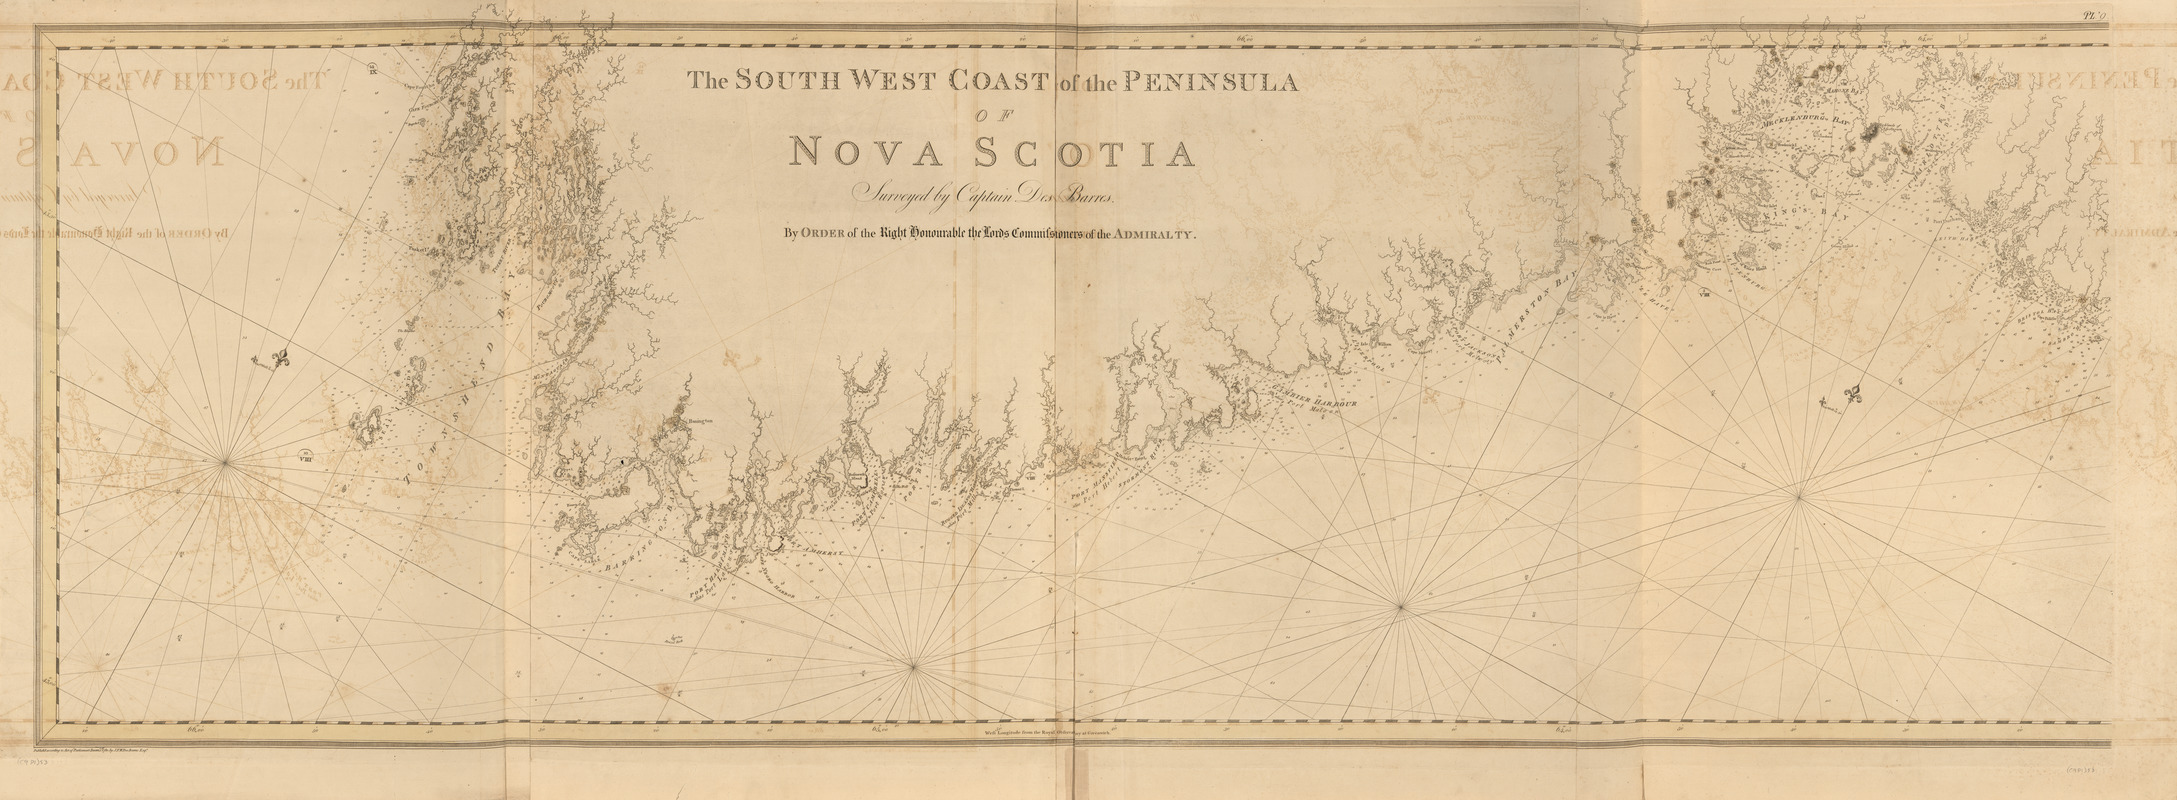 The south west coast of the peninsula of Nova Scotia